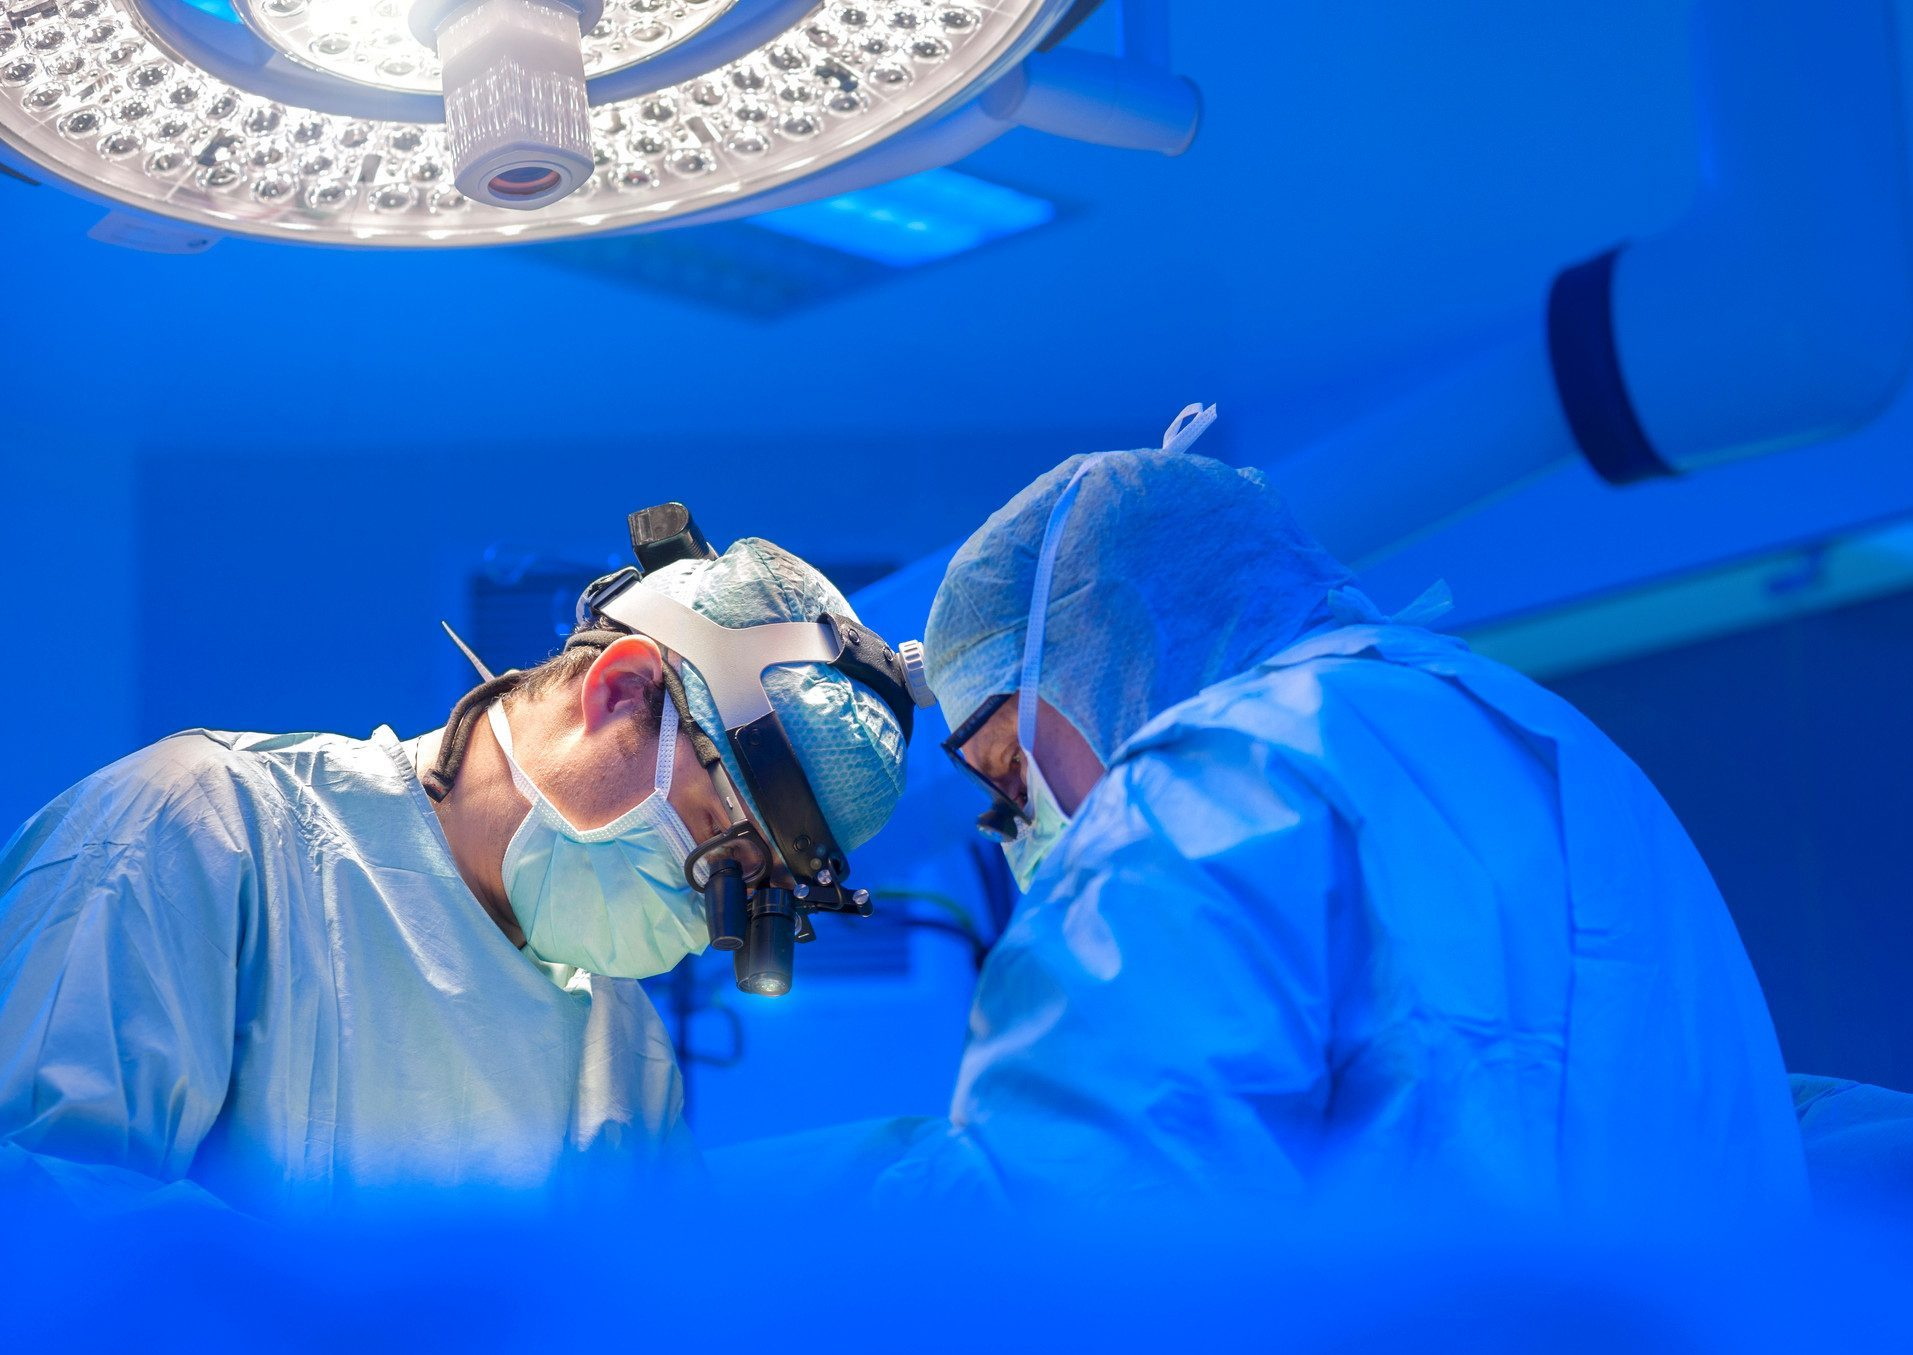 Surgeons say they will need a five-year strategy to deal with the 'mountain' of people on the elective waiting list